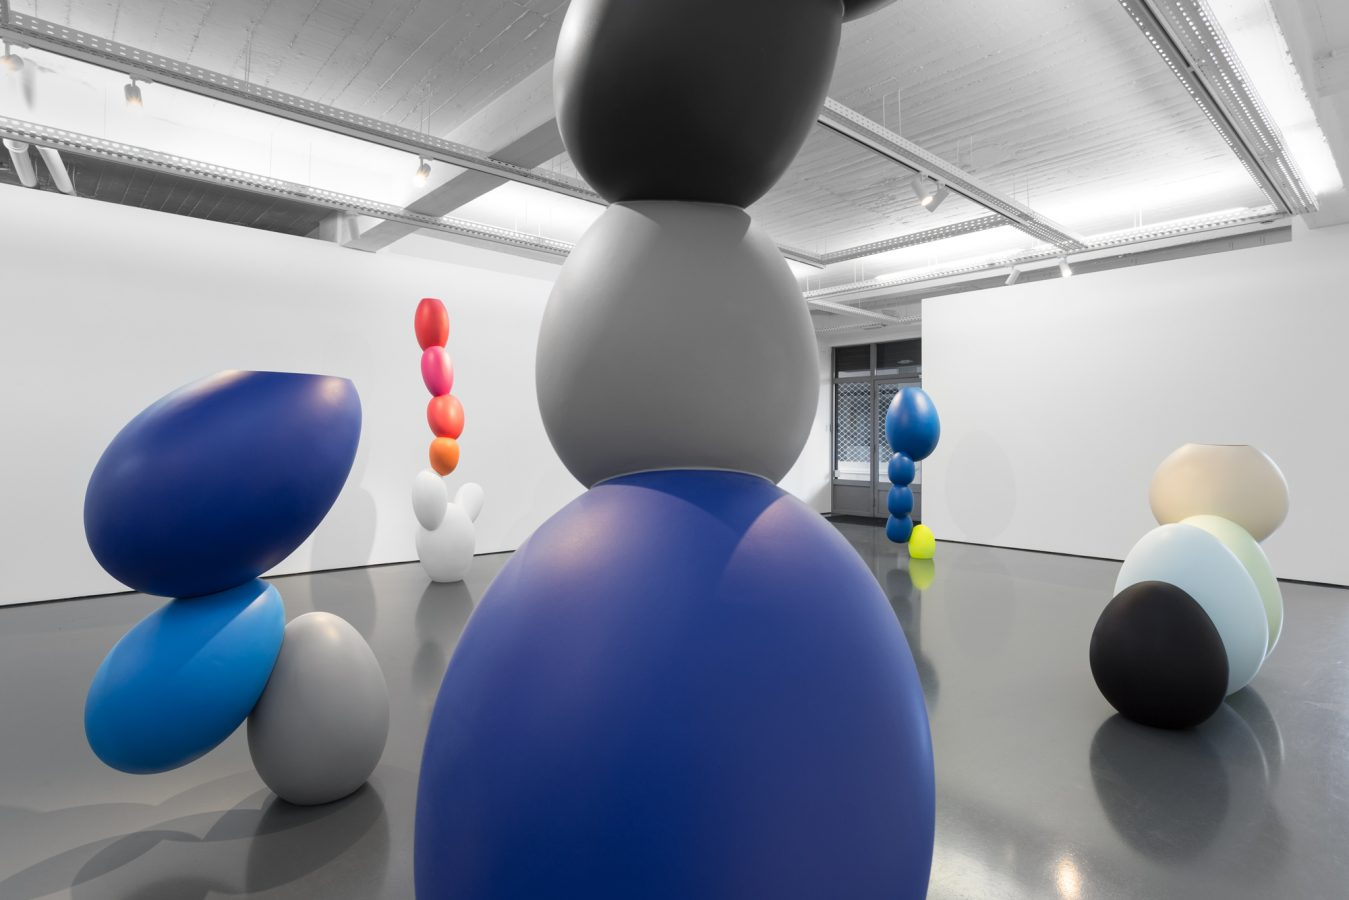 Galeria Pedro Cera – Tobias Rehberger - And the rest should be squandered